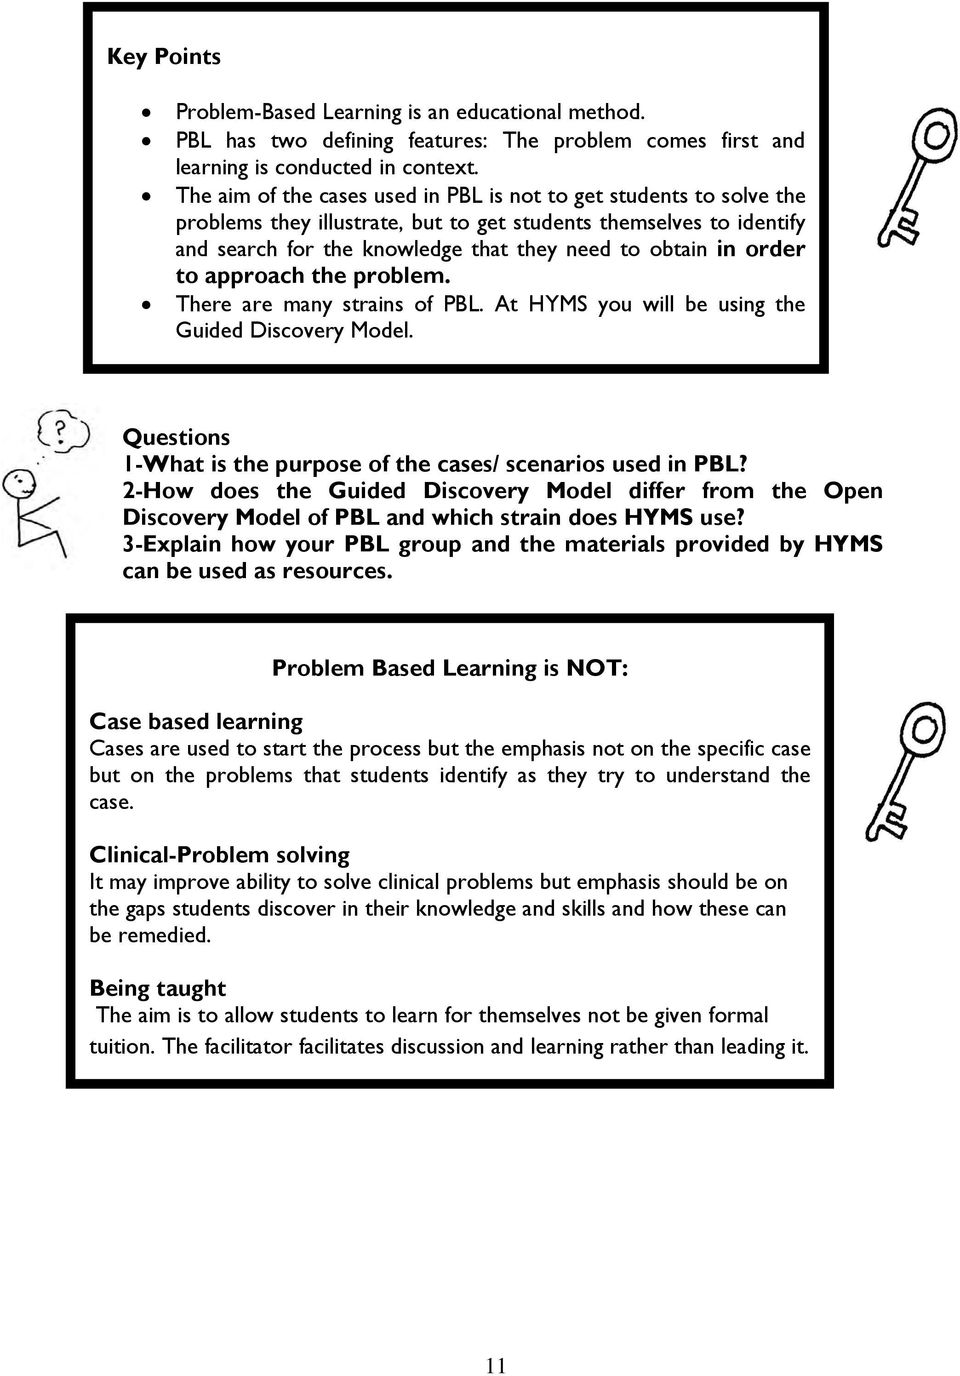 order to approach the problem. There are many strains of PBL. At HYMS you will be using the Guided Discovery Model. Questions 1-What is the purpose of the cases/ scenarios used in PBL?